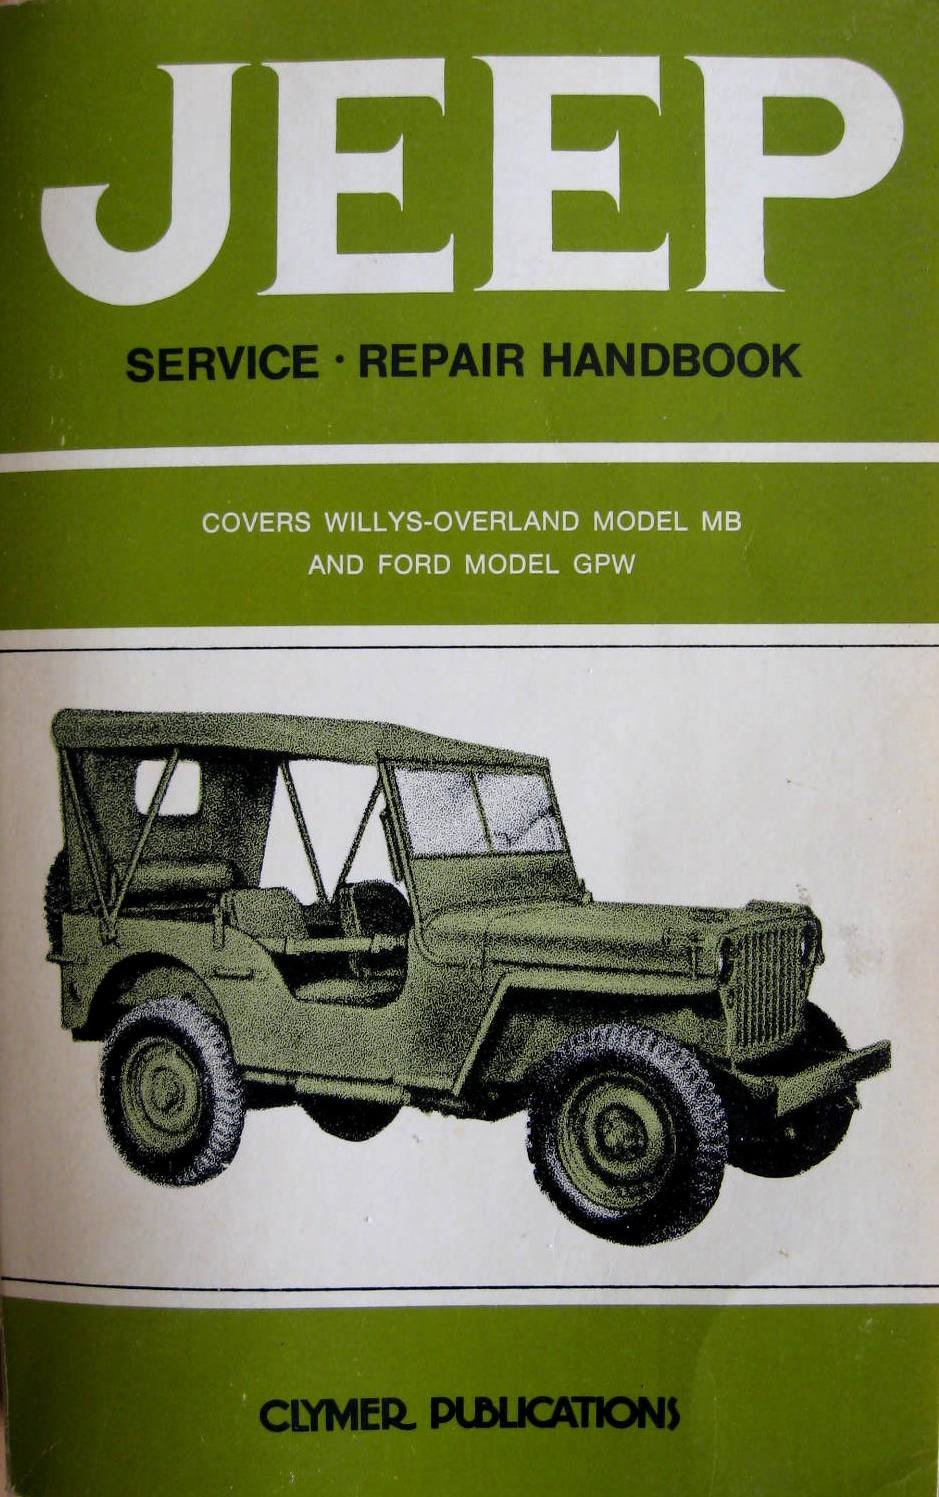 Jeep Service Repair Handbook: Covers Willy Overland Model MB and Ford Model  Gpw (A162): Clymer Publications: 9780892872503: Amazon.com: Books